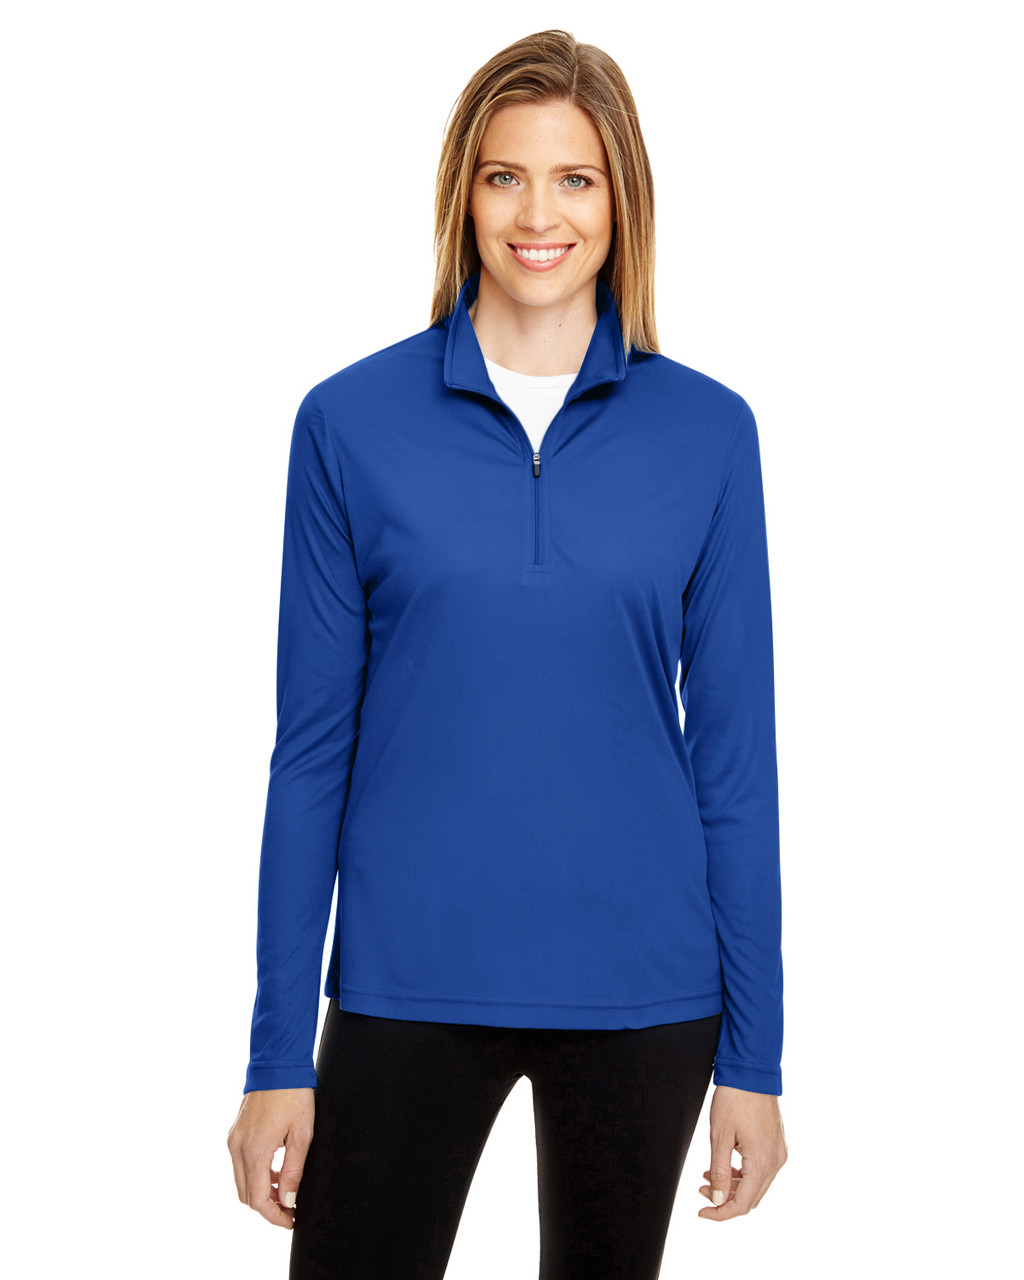 Sport Royal - TT31W Team 365 Ladies' Zone Performance Quarter-Zip Shirt